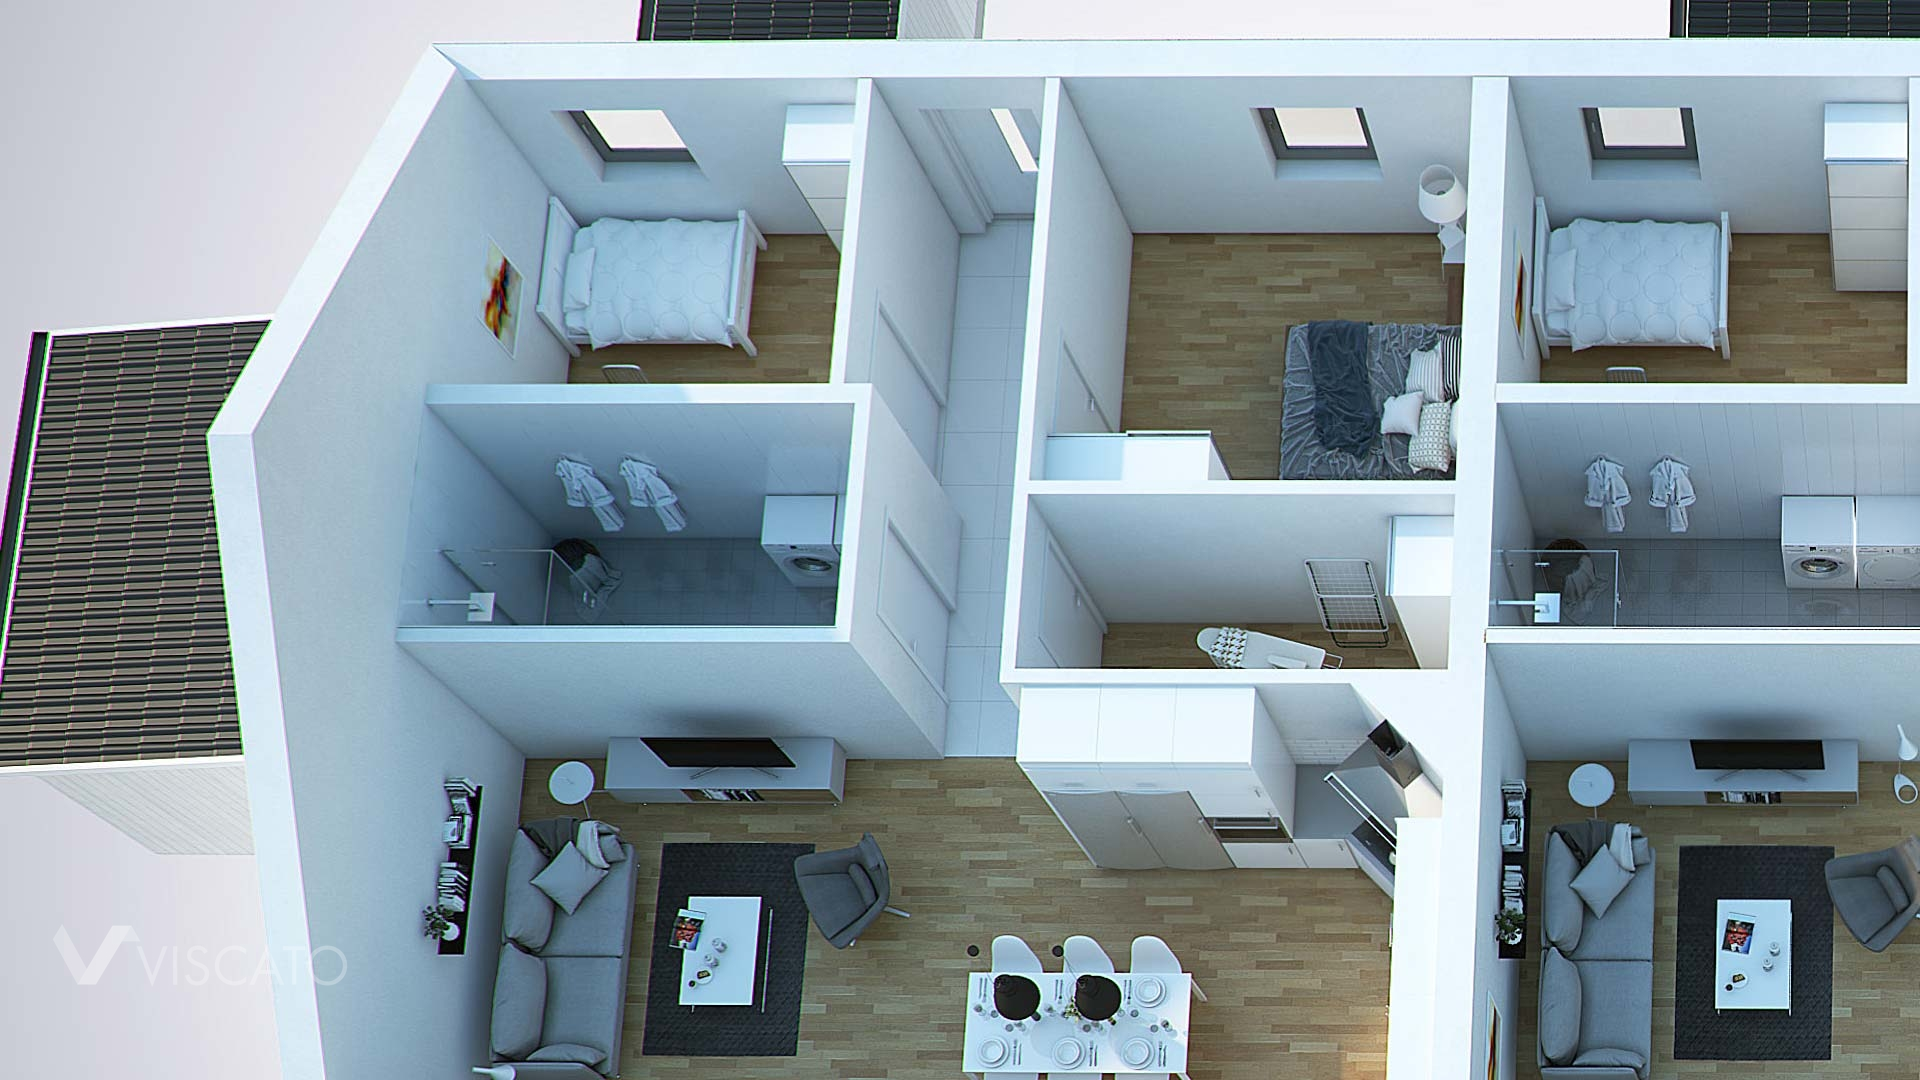 floor plan of a spacious house - 3D visualisation